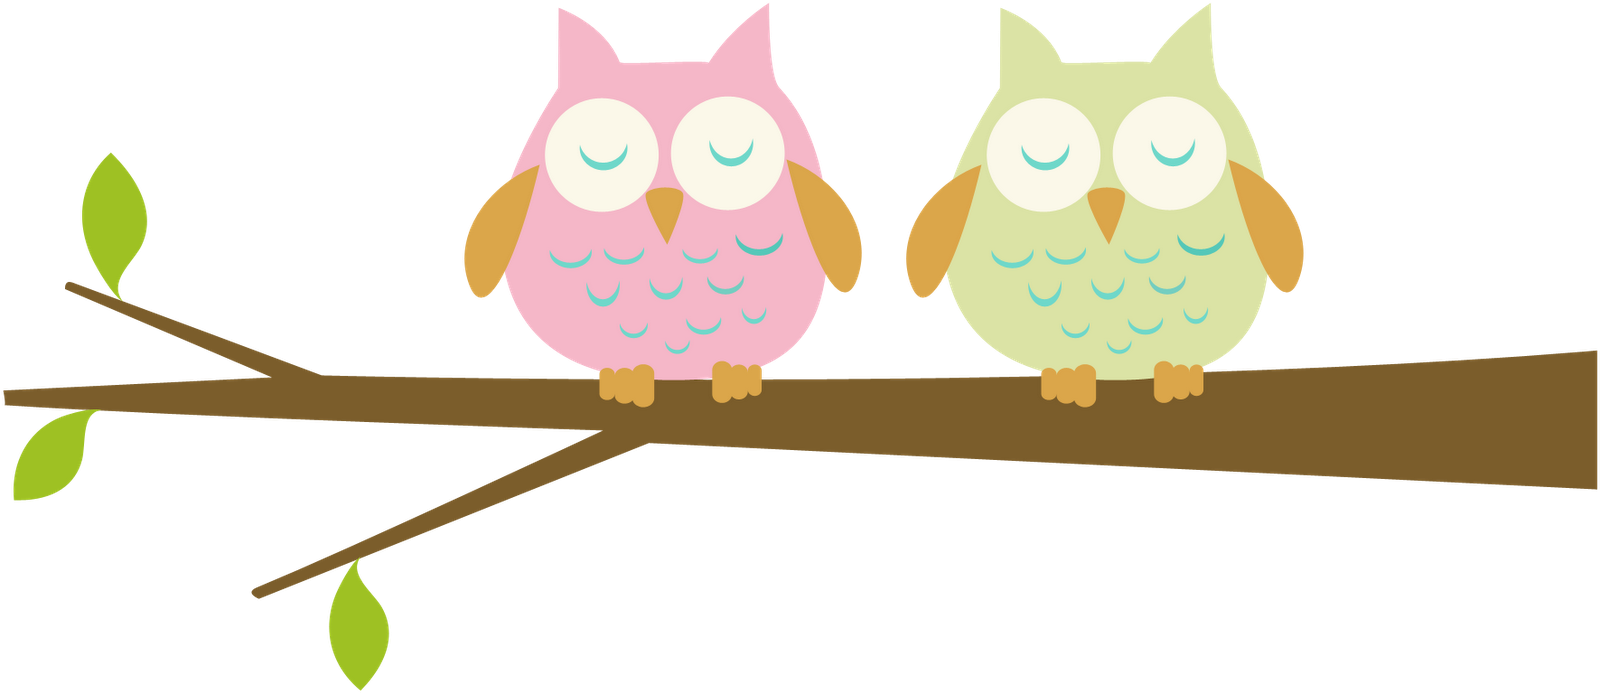 Woodland grey baby owl clipart picture free library Baby Owls Clip Art - Viewing | Clipart Panda - Free Clipart Images picture free library